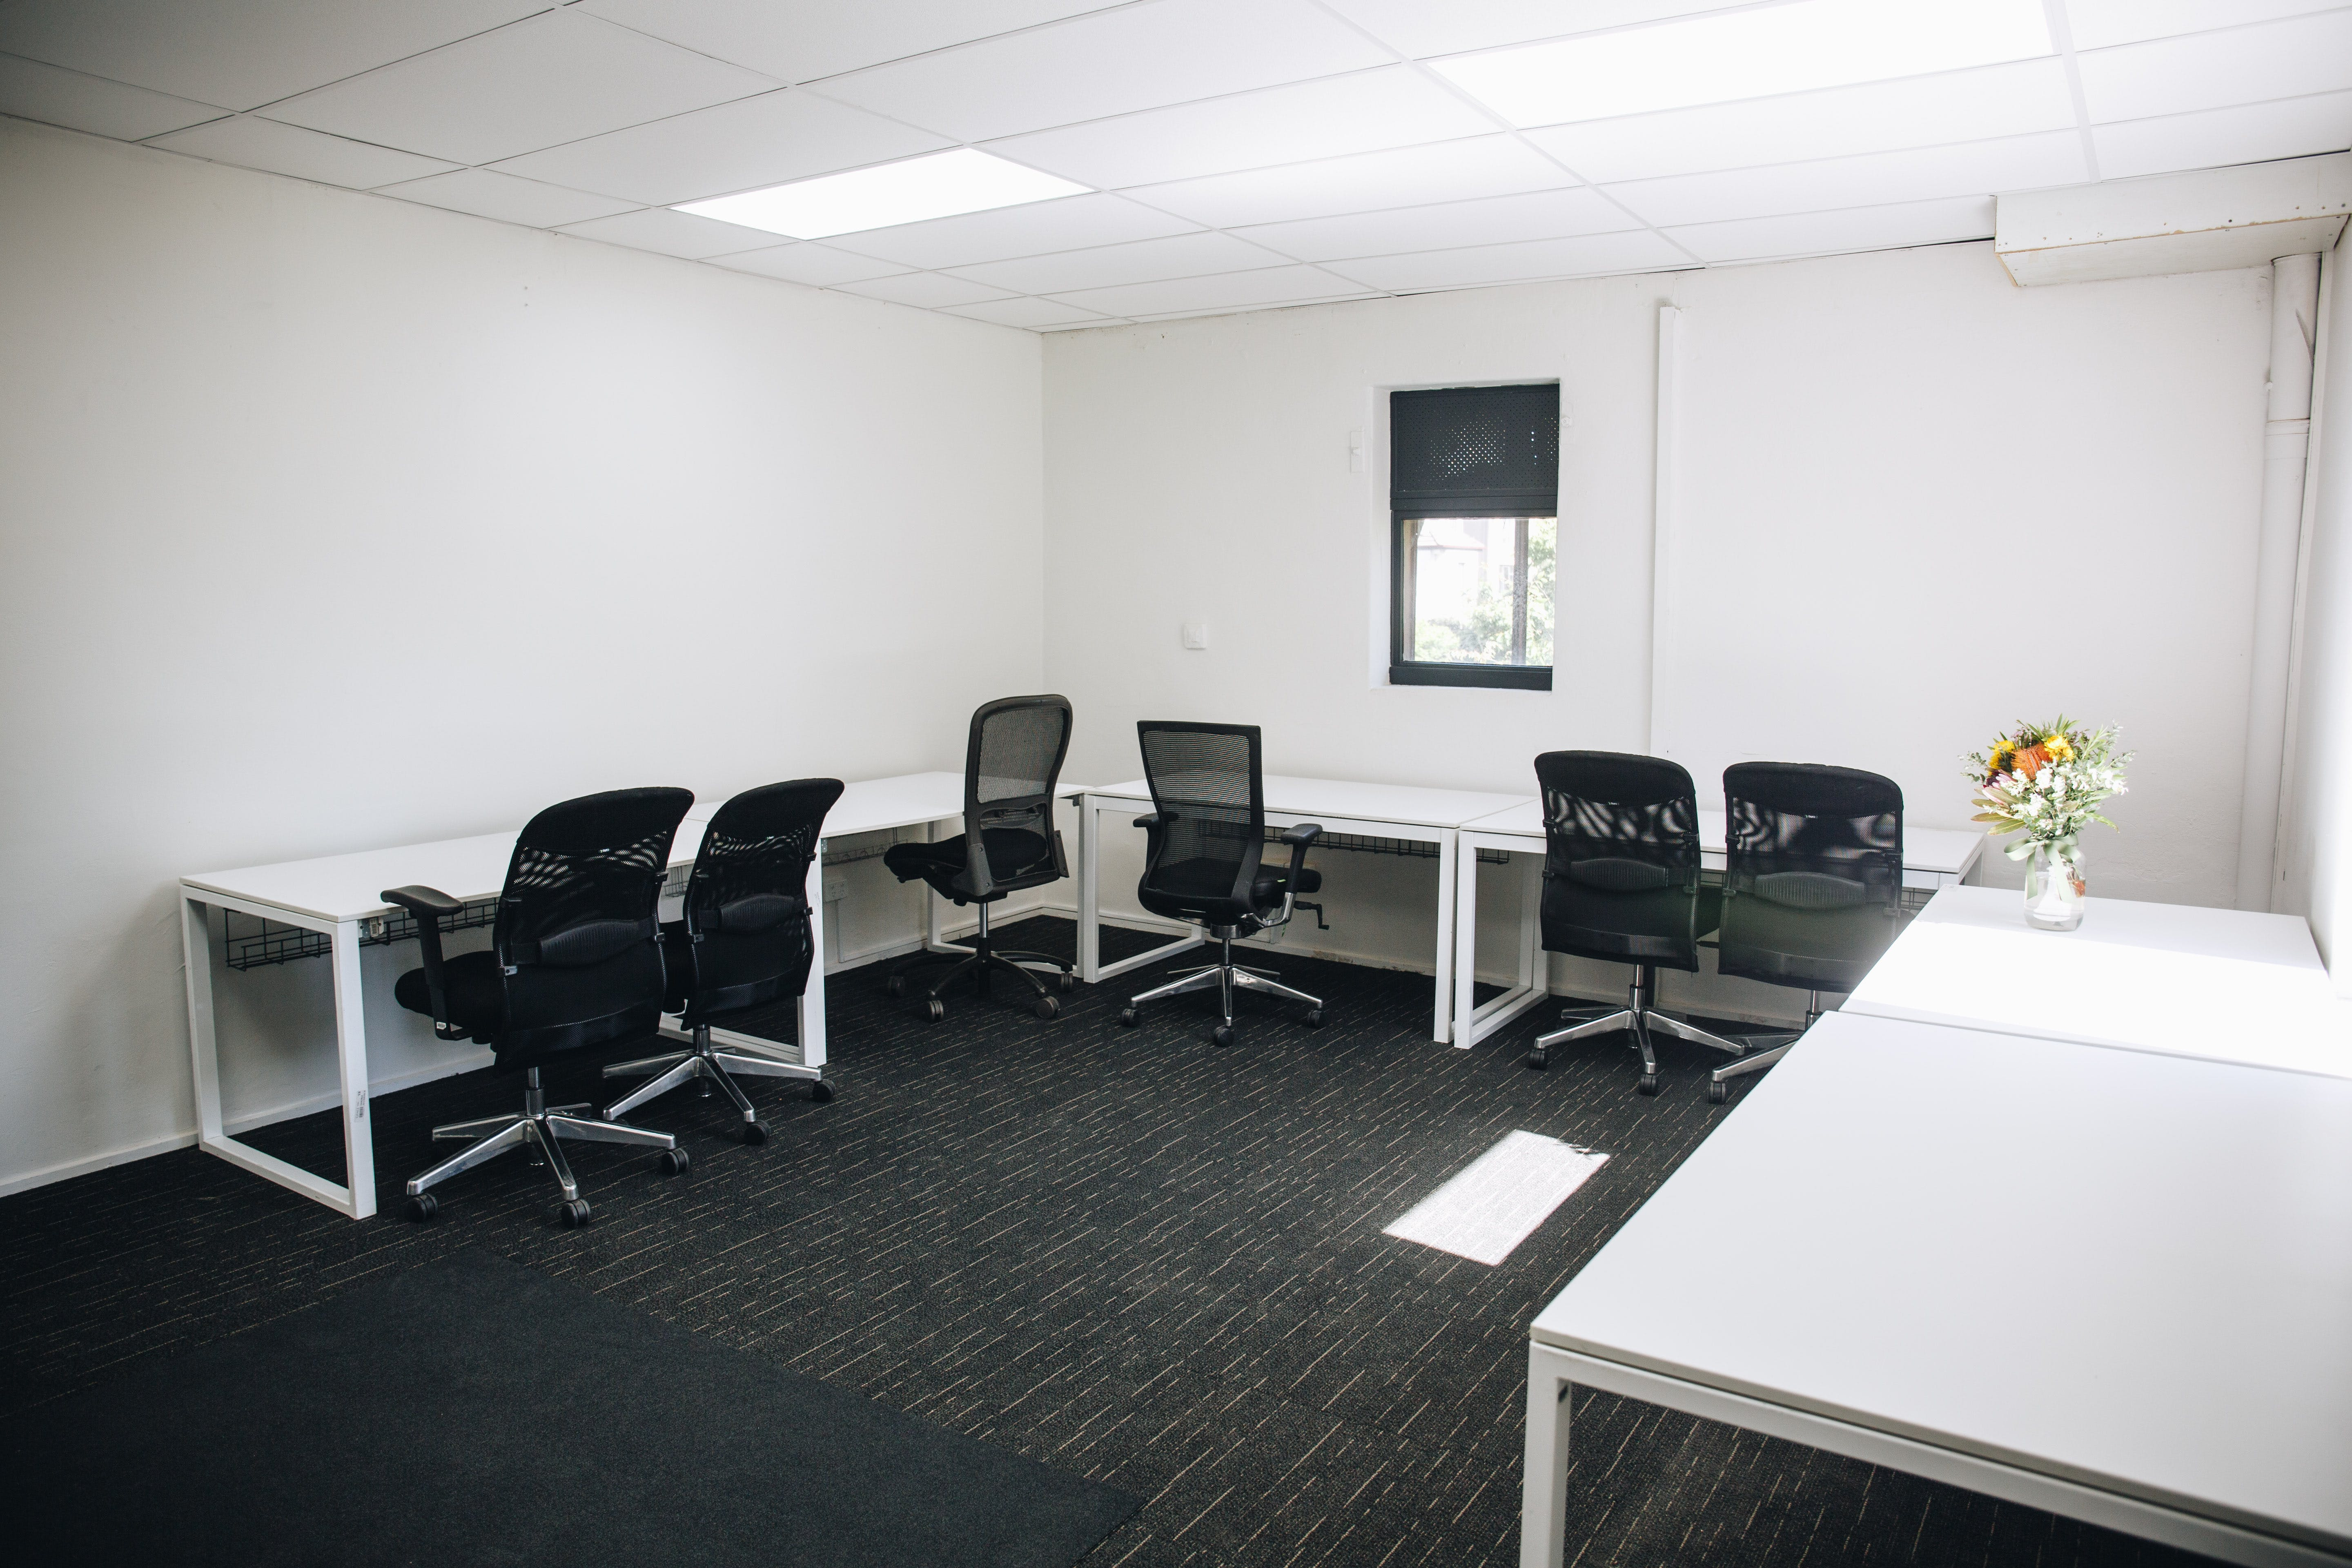 Office 4, private office at Engine House, image 2